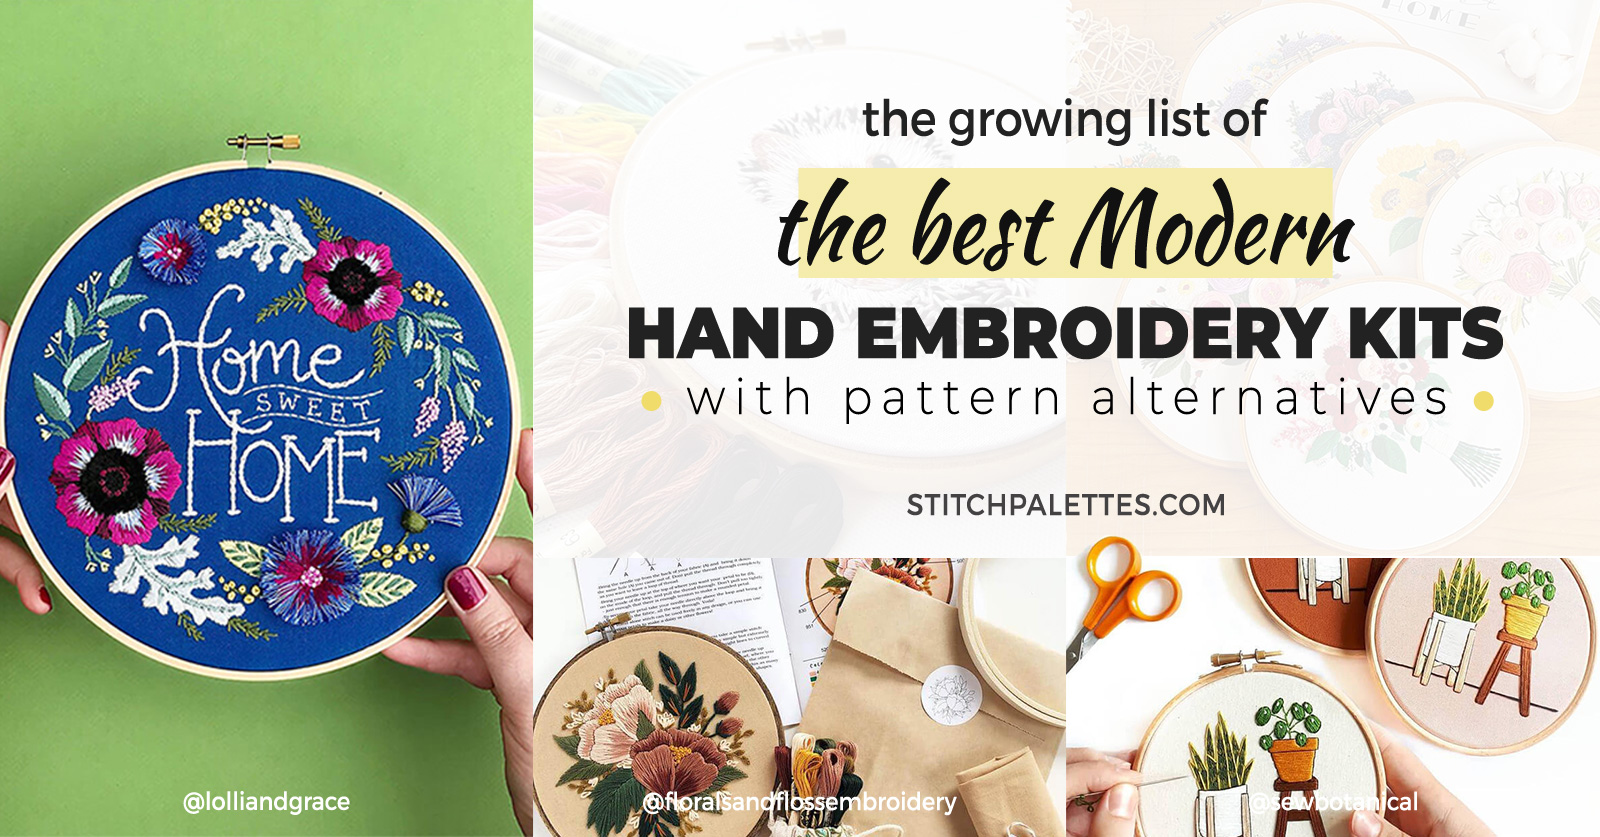 The Best Modern Hand Embroidery Kits, A Growing List